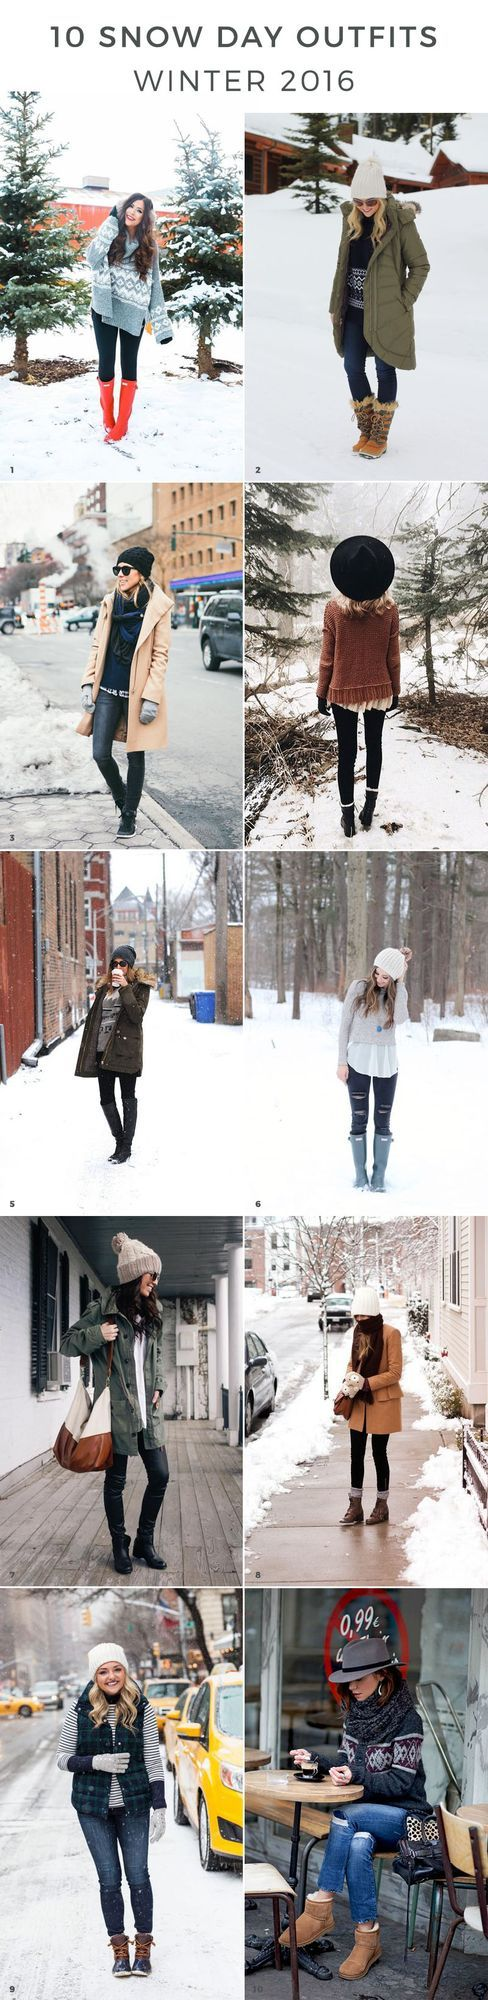 10 Snow Day Outfits That Will Actually Keep You Warm | Advice from a 20 Something | Bloglovin'